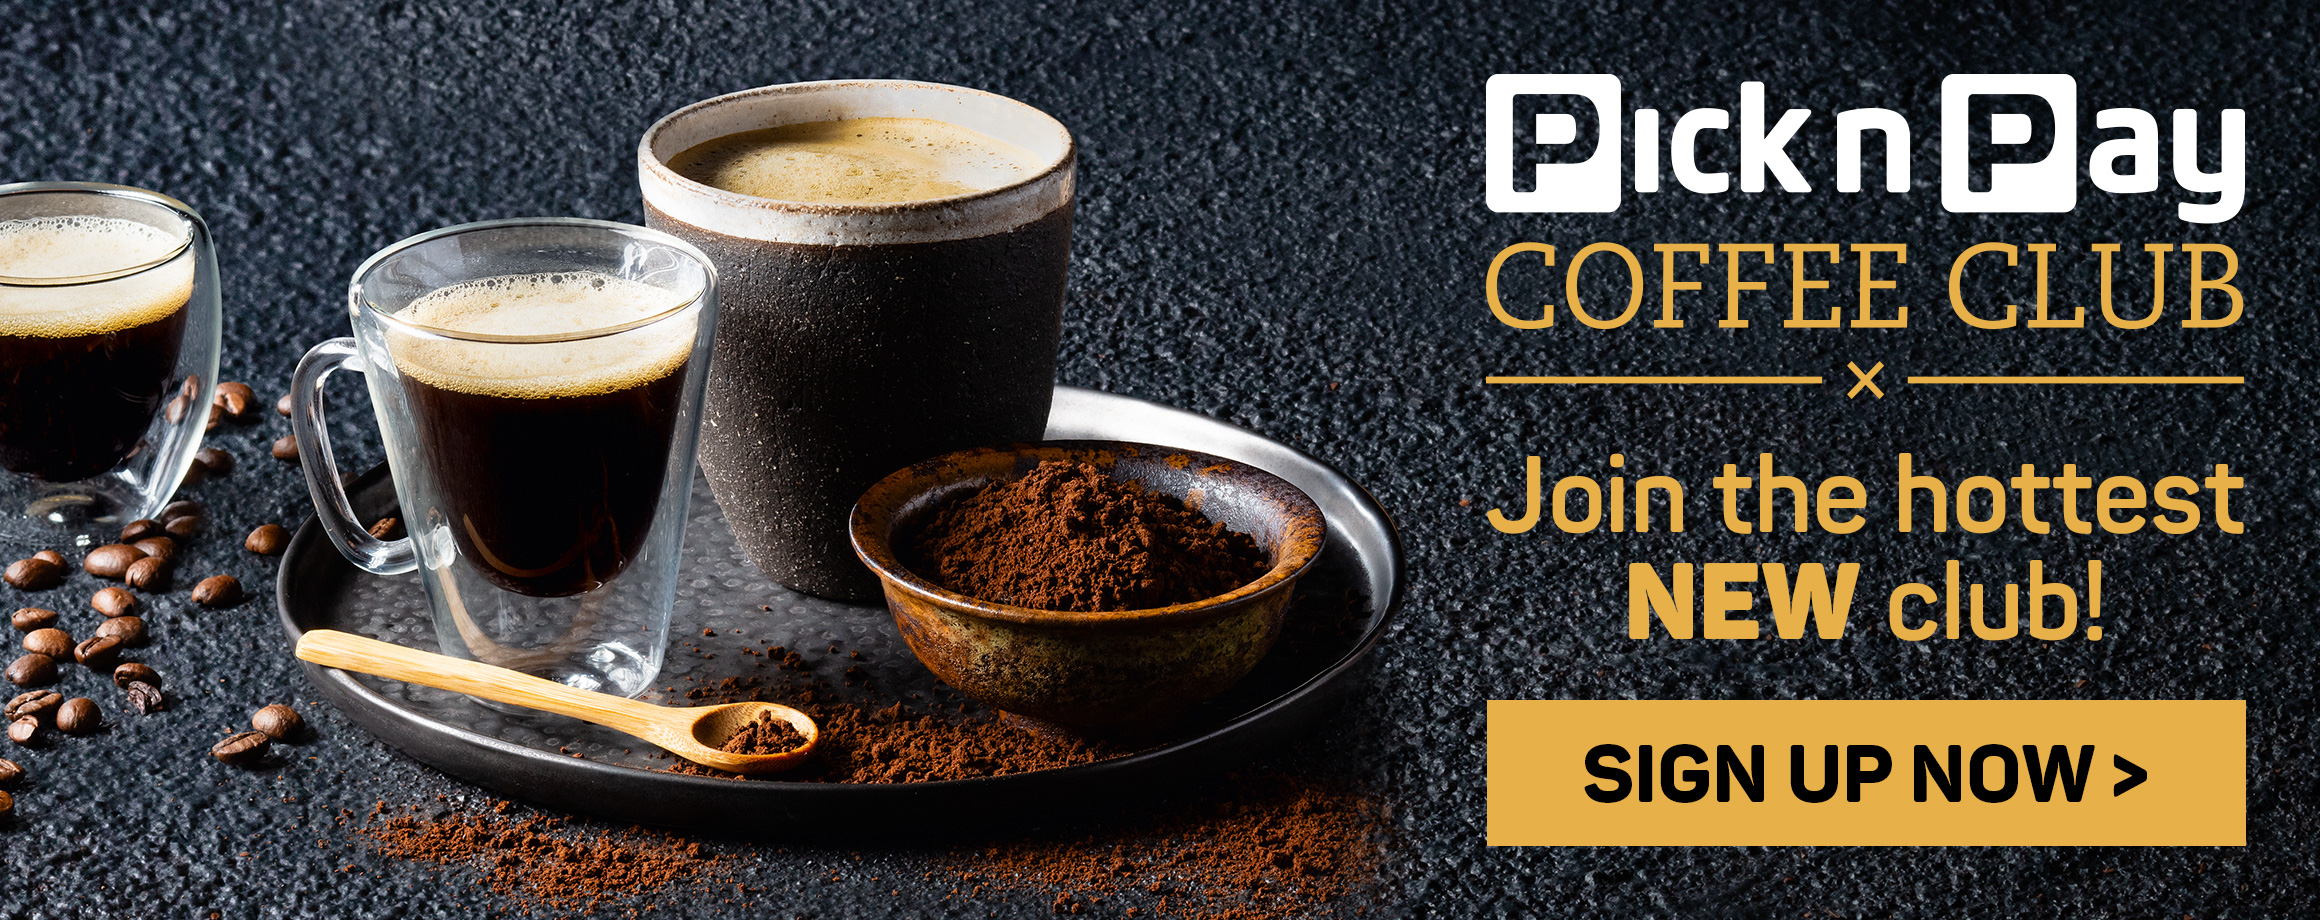 Pick n Pay coffe club. Join the hottest new club! Sign up now!